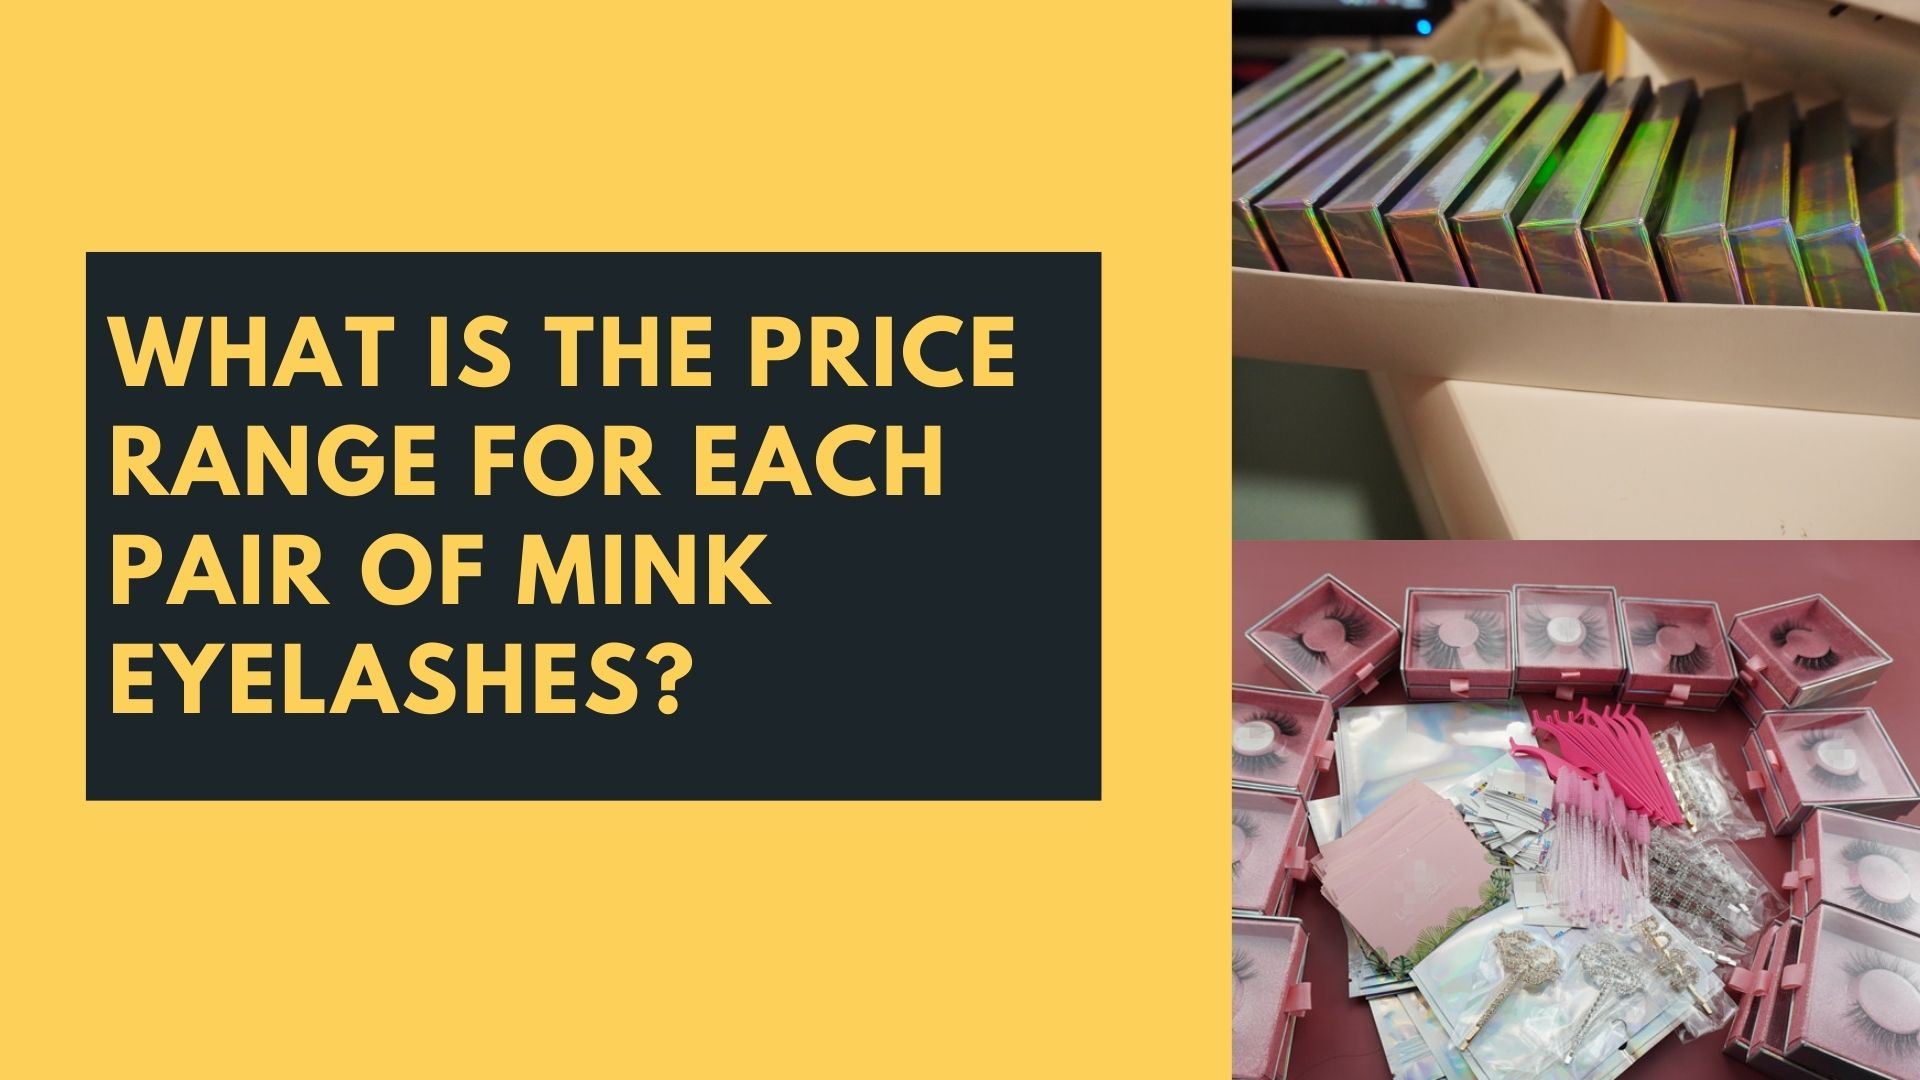 What is the price range for each pair of mink eyelashes